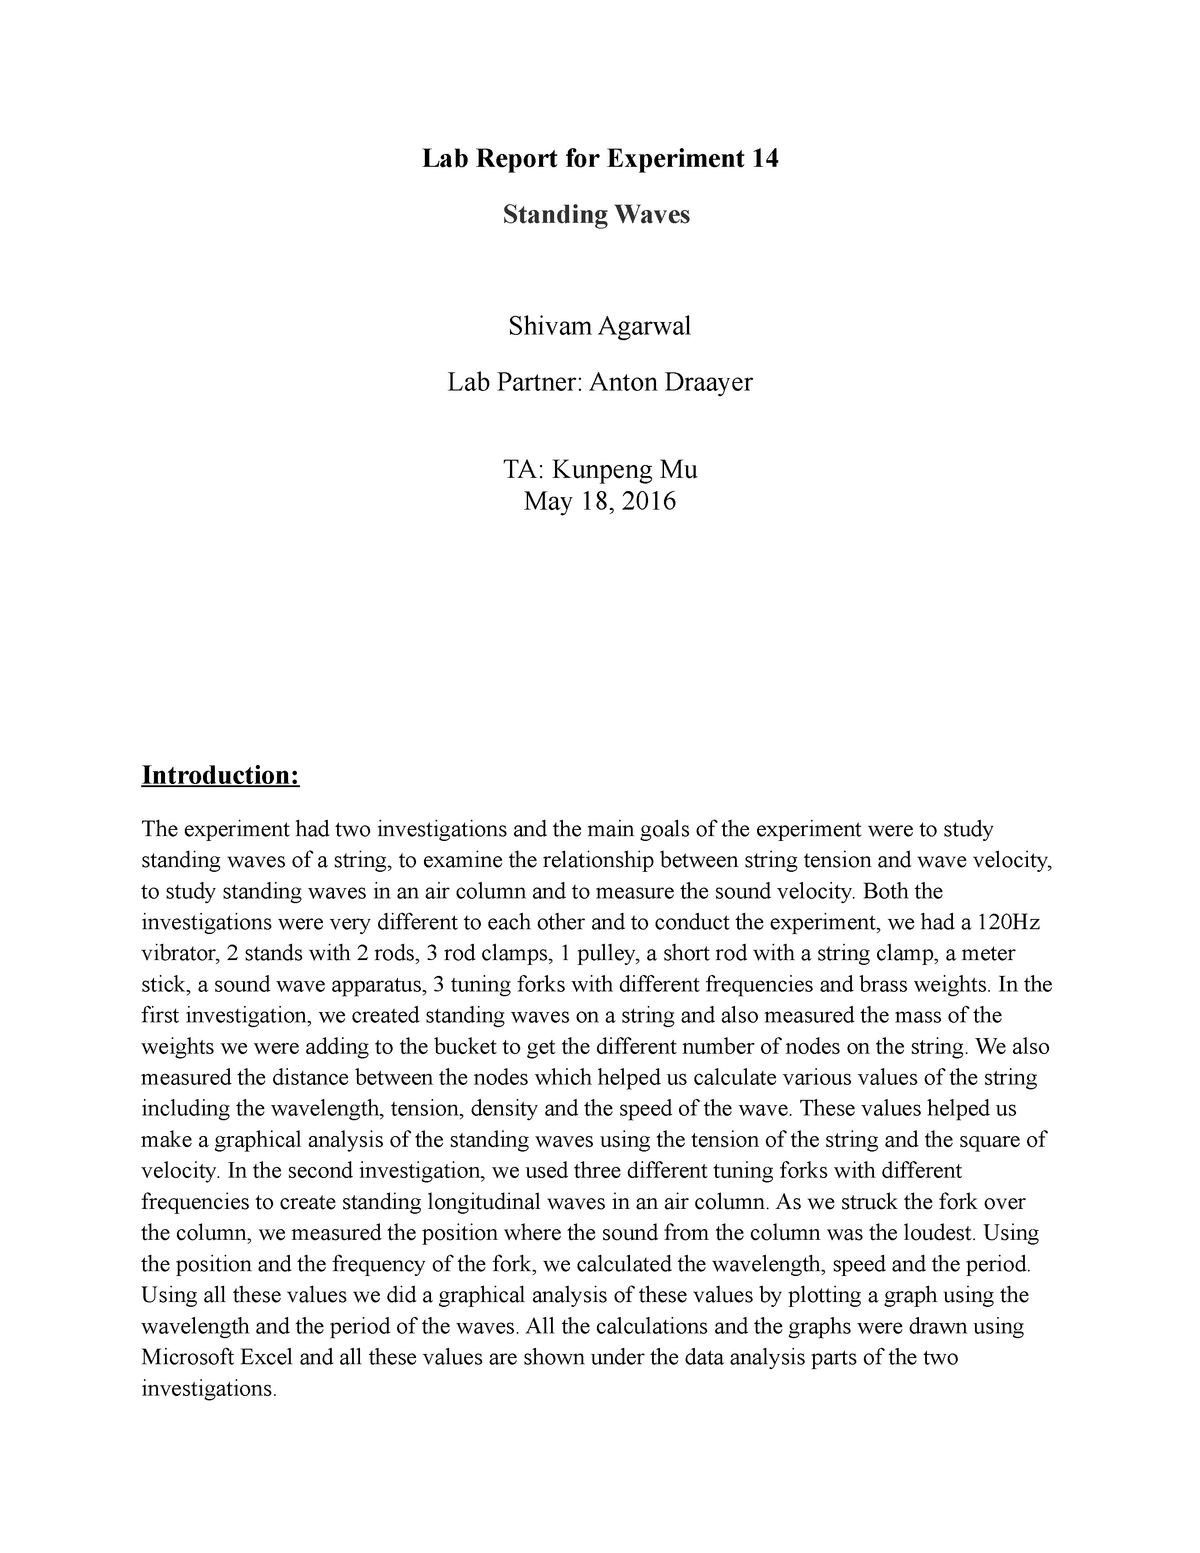 Lab 2 - This is a Lab report for a physics experiment on